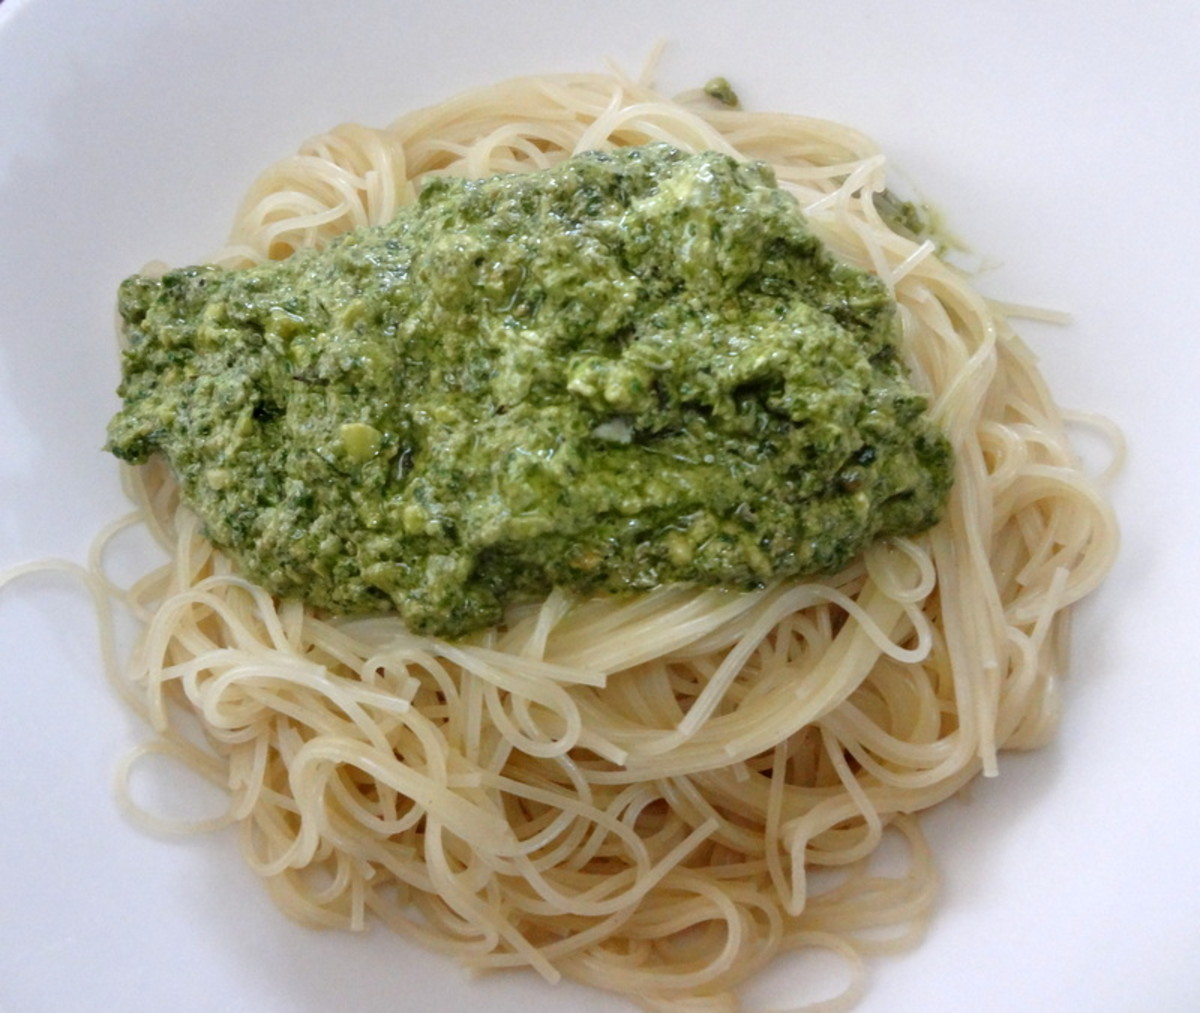 How to Make a Basil Pesto Sauce